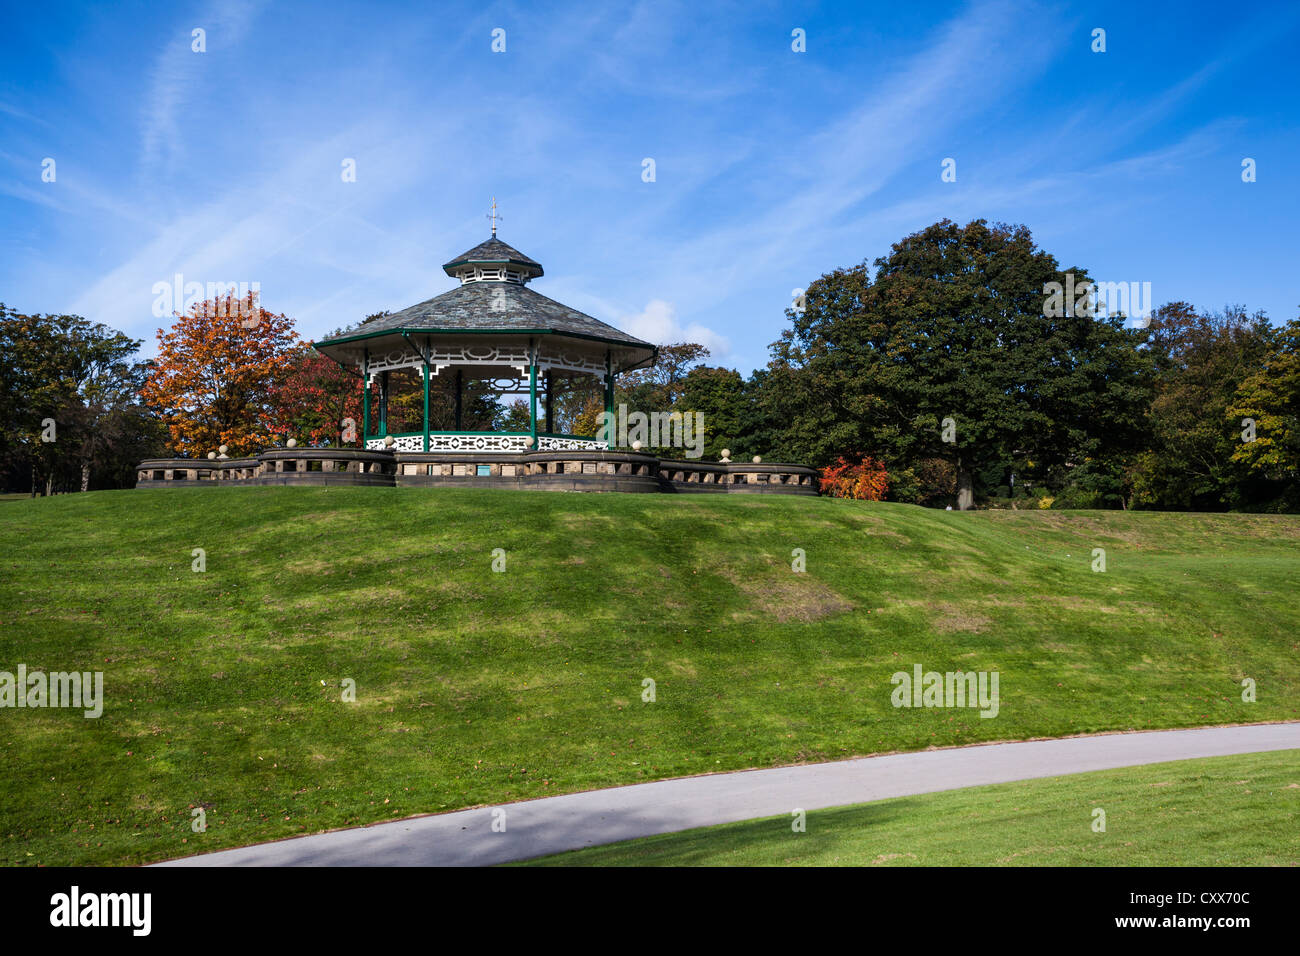 The Bandstand at Greenhead Park Huddersfield Stock Photo